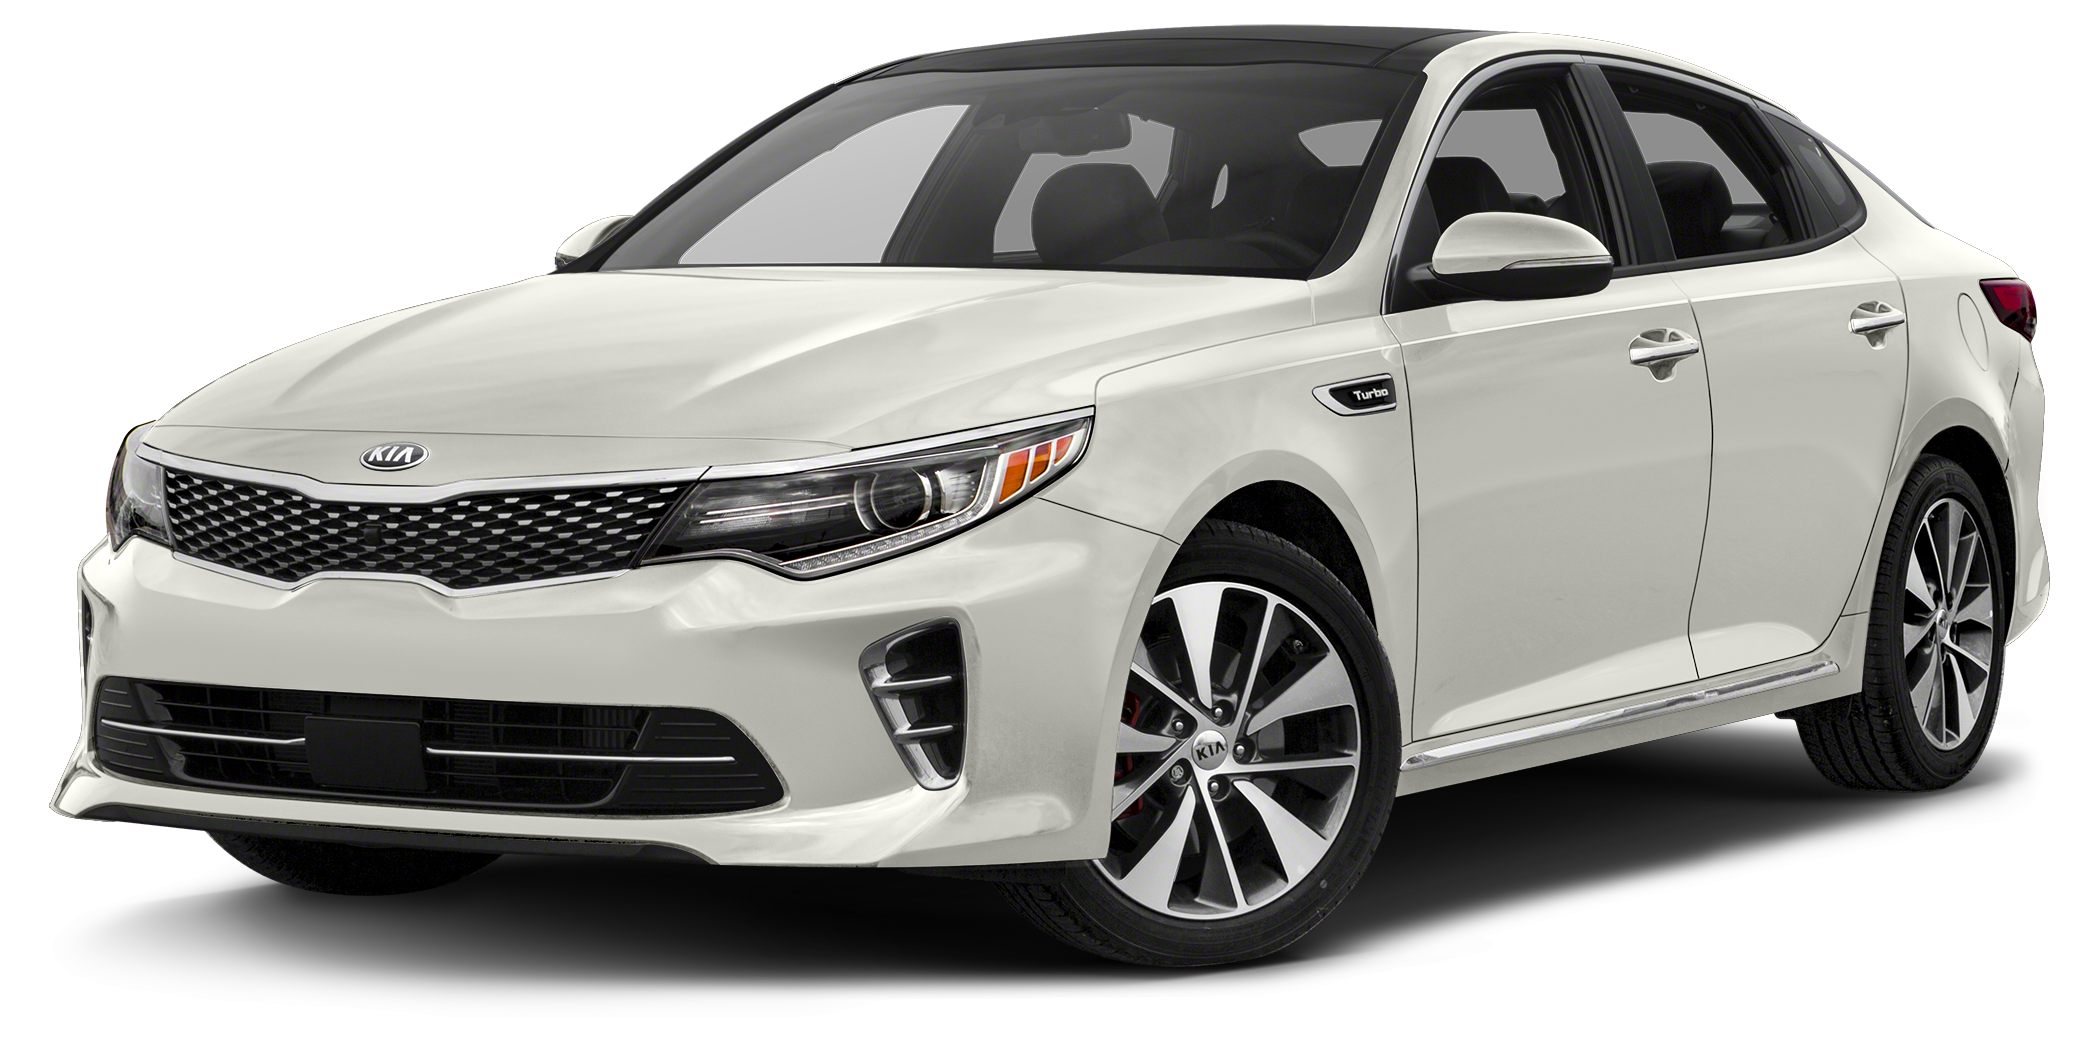 2018 Kia Optima SX Turbo Miles 10Color White Stock SB17002 VIN 5XXGV4L2XJG194394